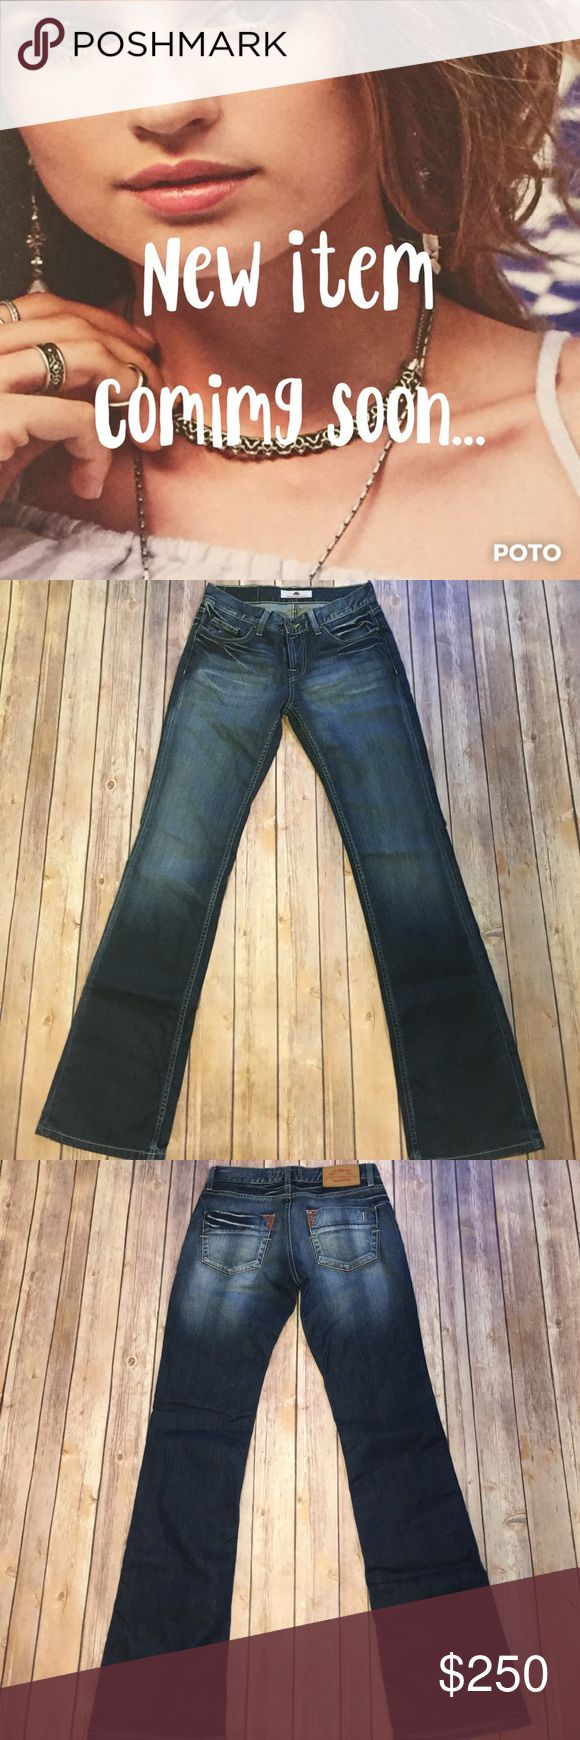 """🆕 Slim Flare Leg Jeans Gently worn, Fornarina, slim flare jeans. Size 27. Mid-rise, medium wash, some stretch with a little bit of whiskering on the front and a little bit of red stitching on the back pockets. Approx. measurements, waist 14"""", hips 19"""", rise 8"""", inseam 32"""". Please use the offer button for all offers & bundle for a discount. Thanks 💋 410 Fornarina Jeans"""